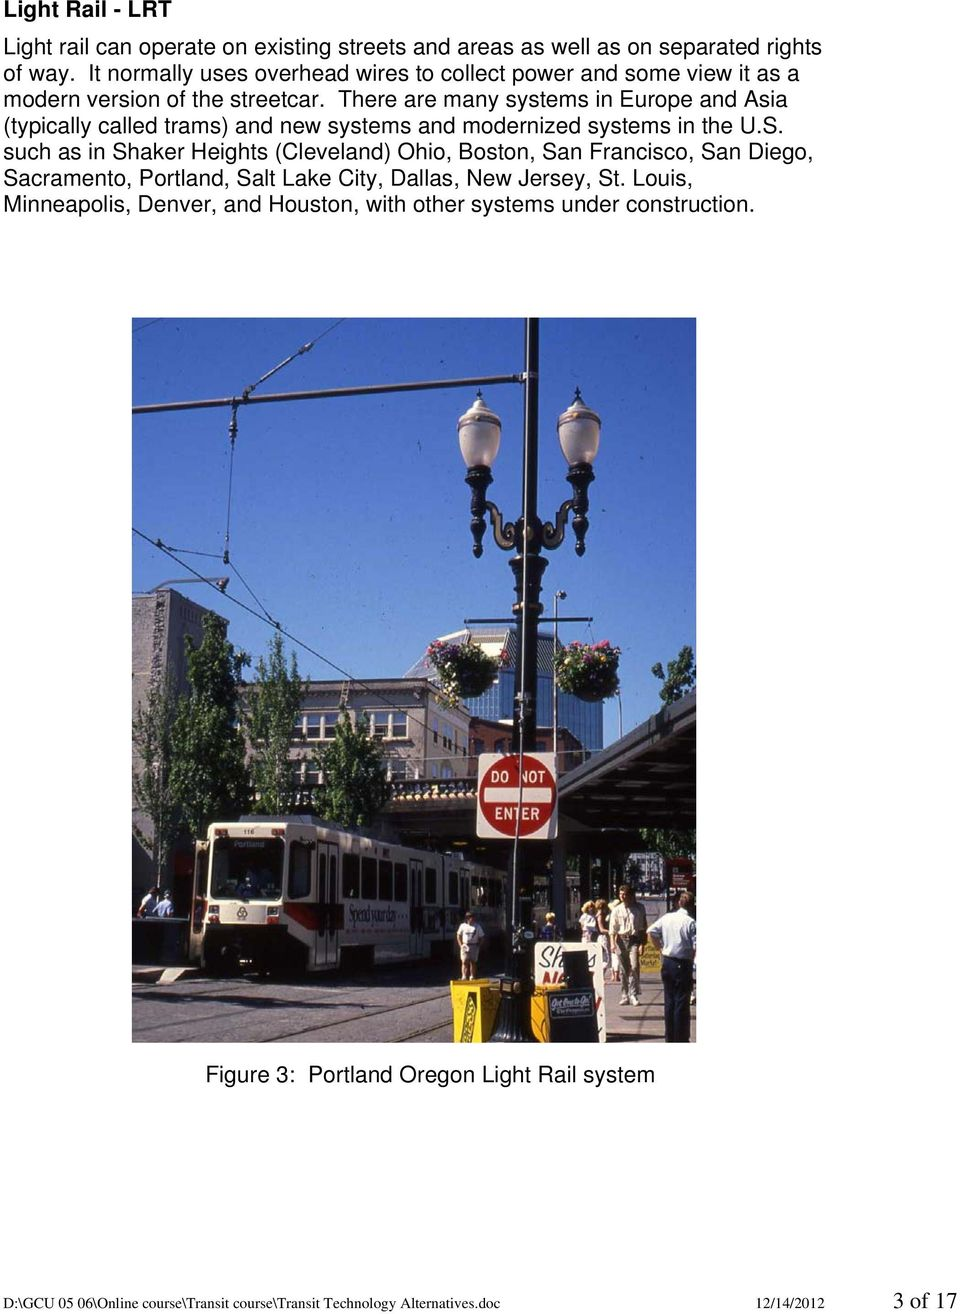 There are many systems in Europe and Asia (typically called trams) and new systems and modernized systems in the U.S.